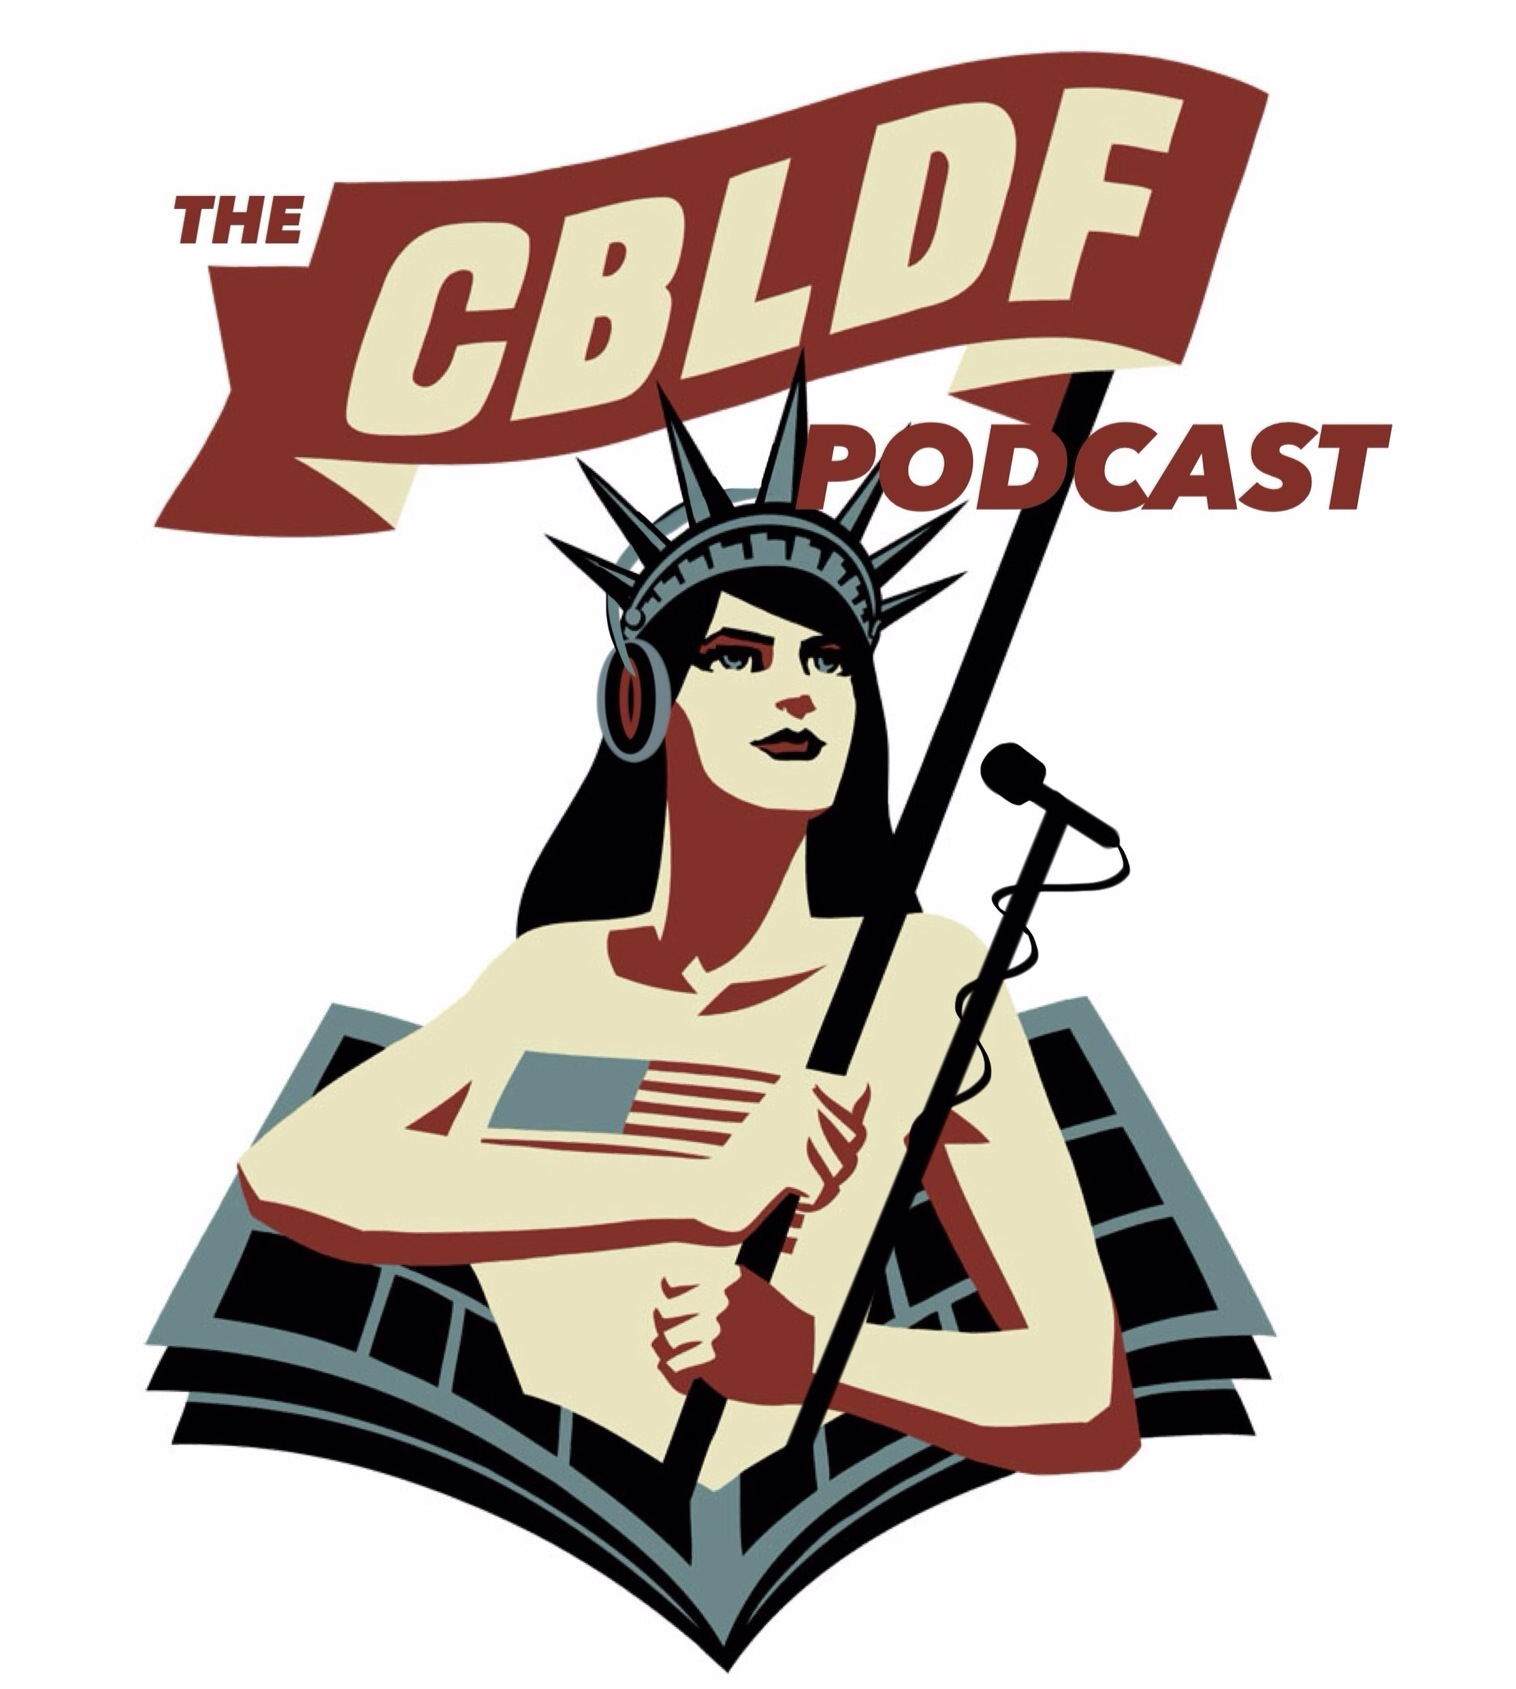 CBLDF Podcast Episode 6: Comics in Education, Live from NYCC!